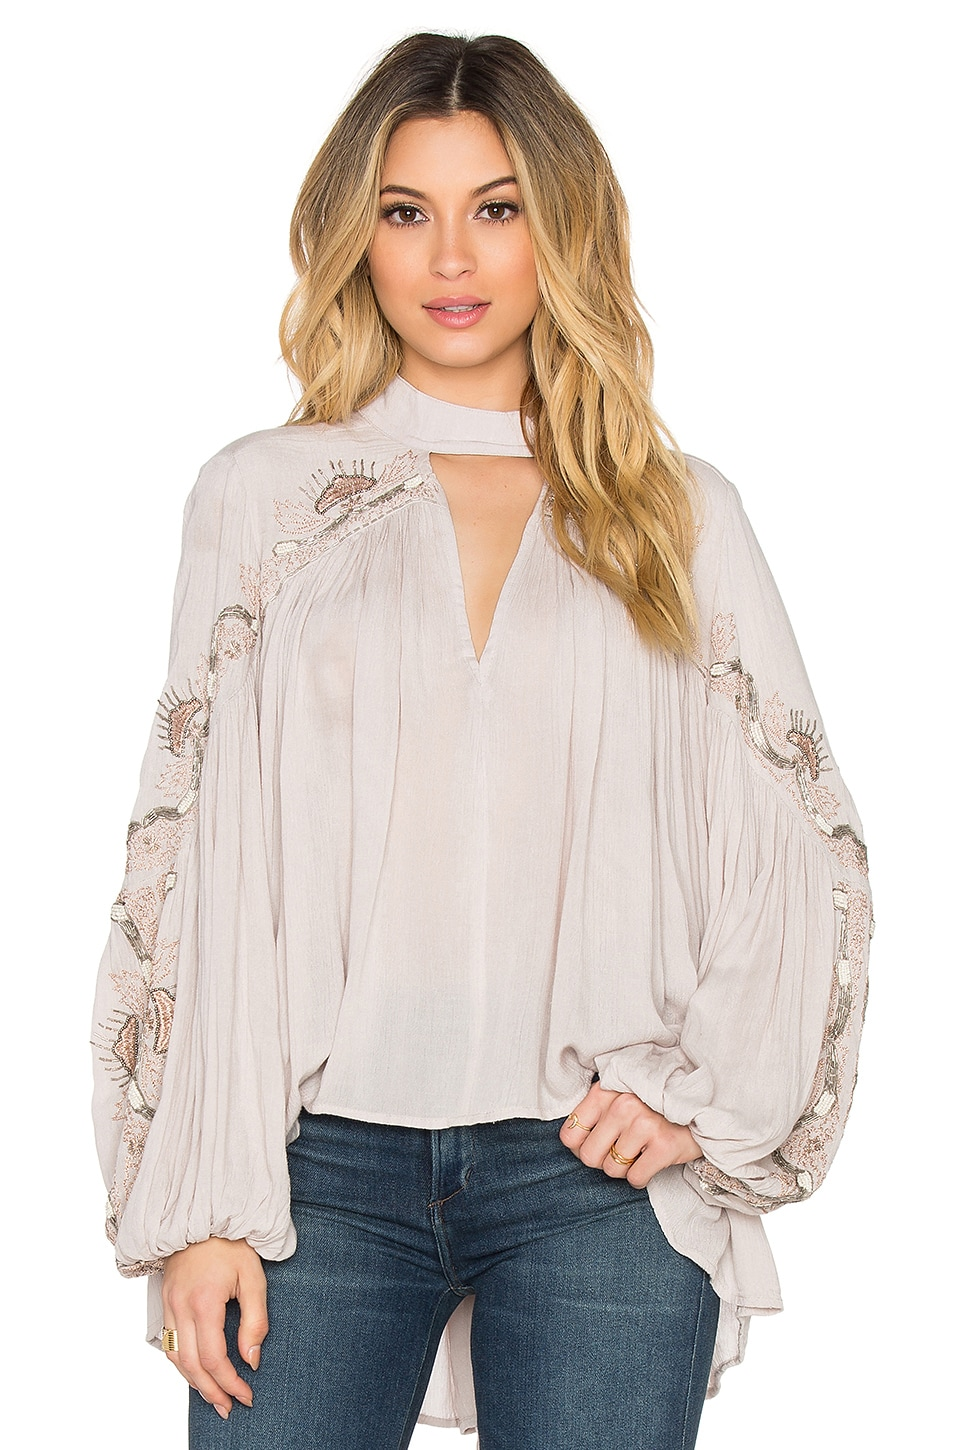 Free People Sweet Fantasy Blouse in Champagne